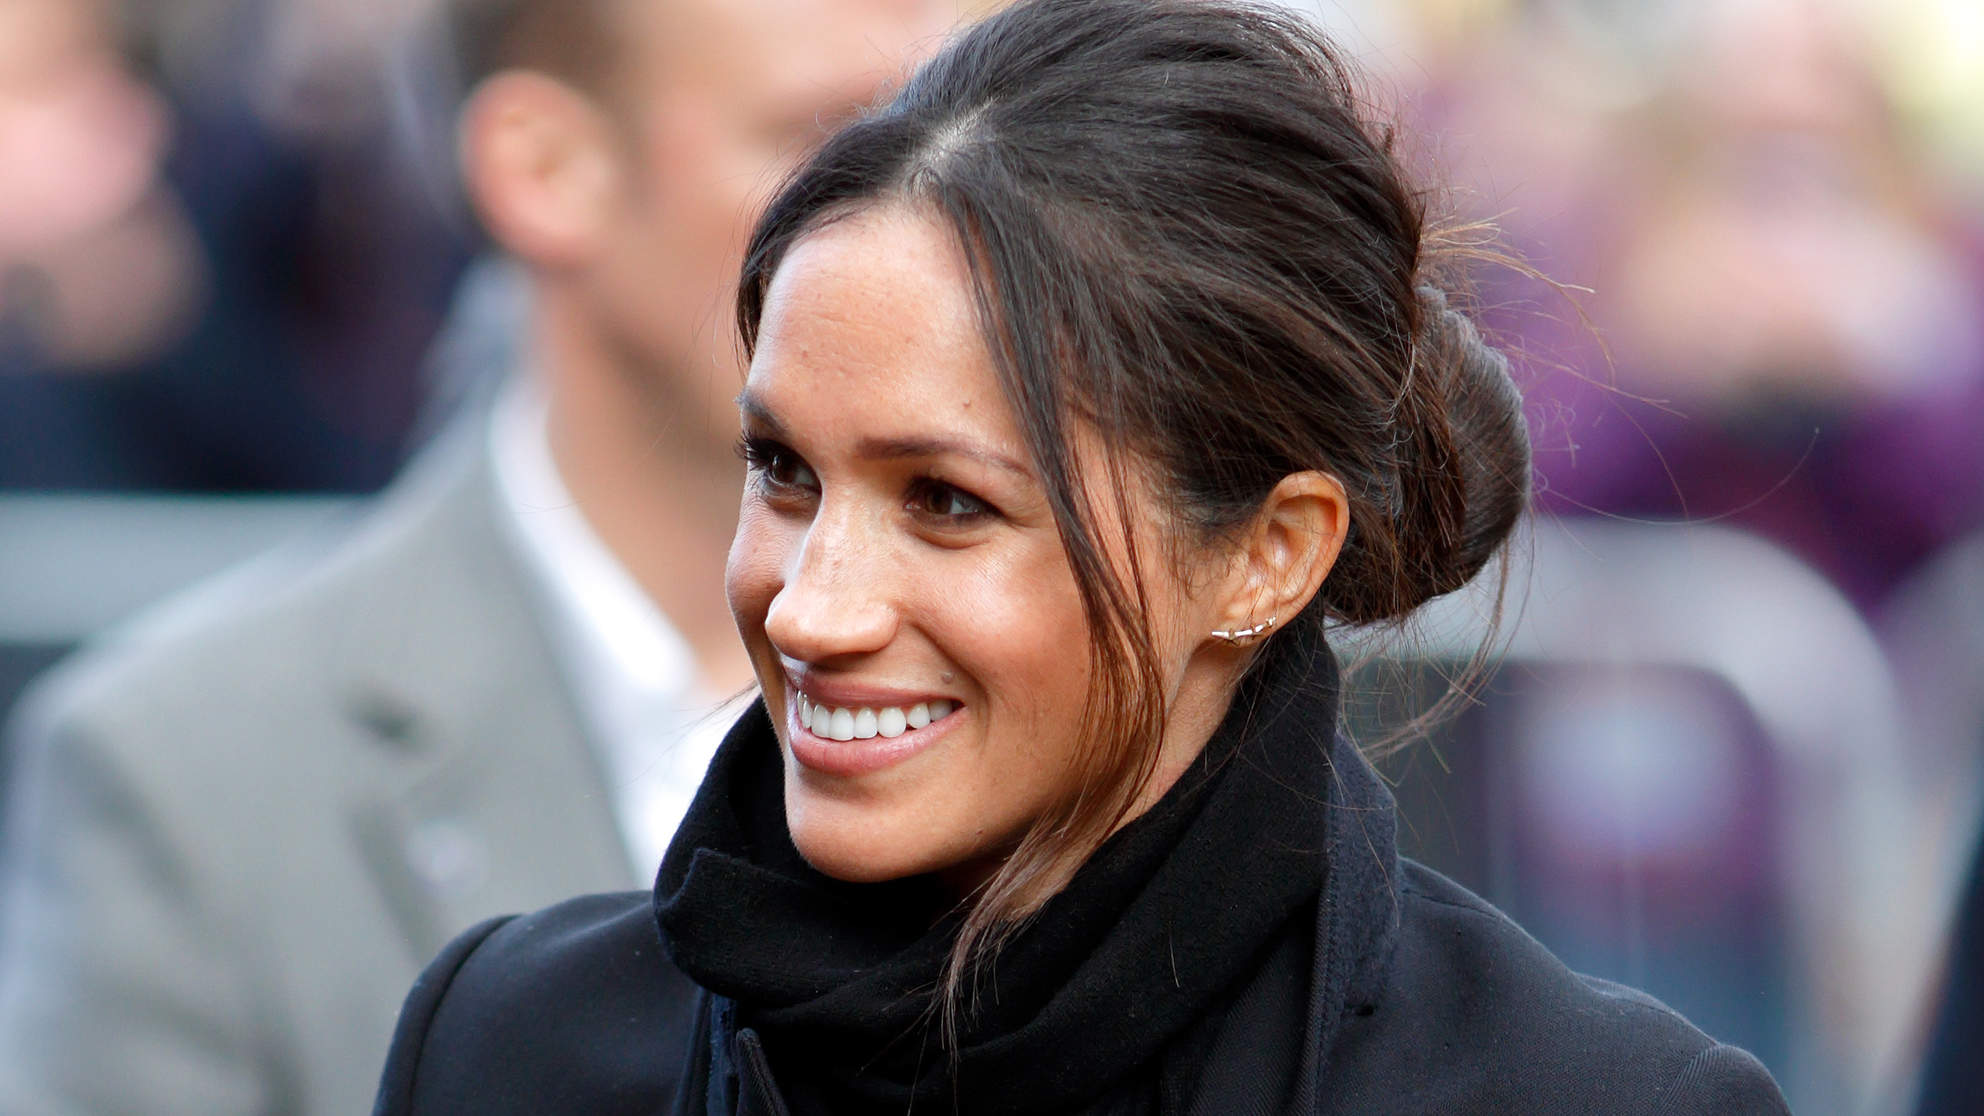 10 Messy Bun Ideas That Will Make You Feel Like Meghan Markle